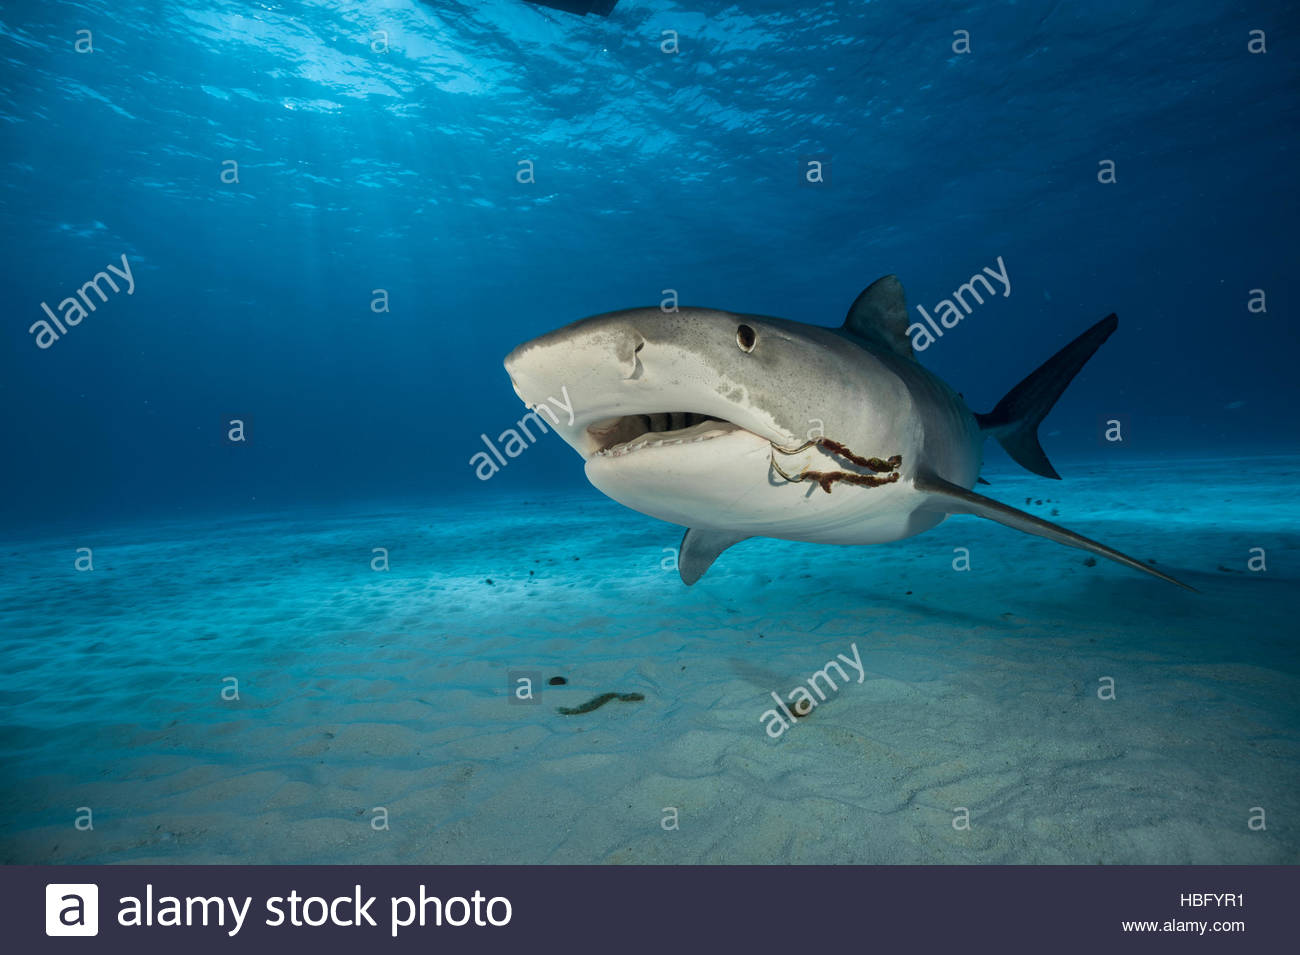 Two fishing hooks dangle from the corner of a tiger shark's mouth as it plies the waters of the Bahamas. - Stock Image